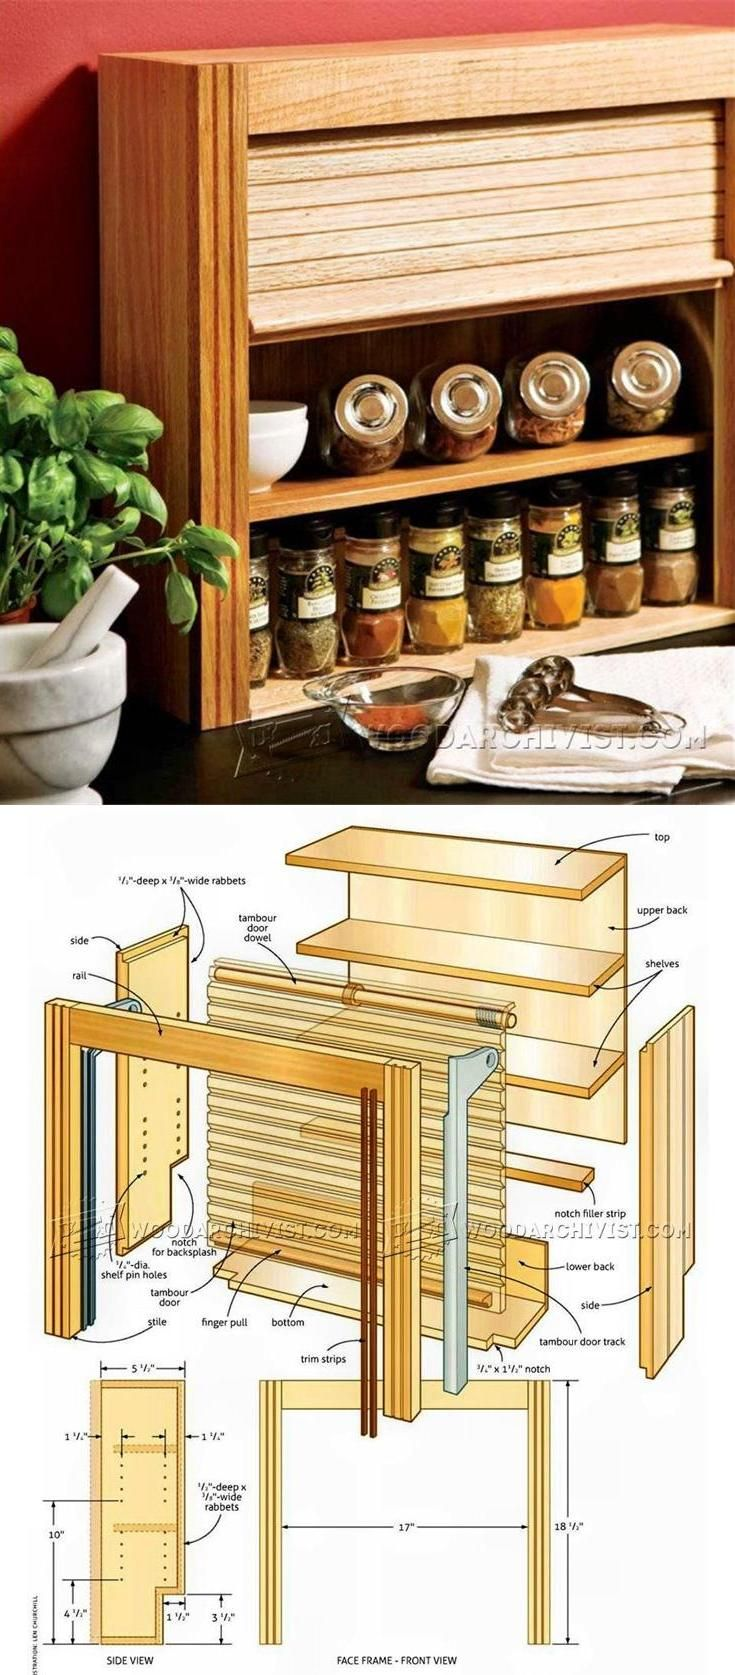 Best 25+ Wooden spice rack ideas on Pinterest | Spice racks ...